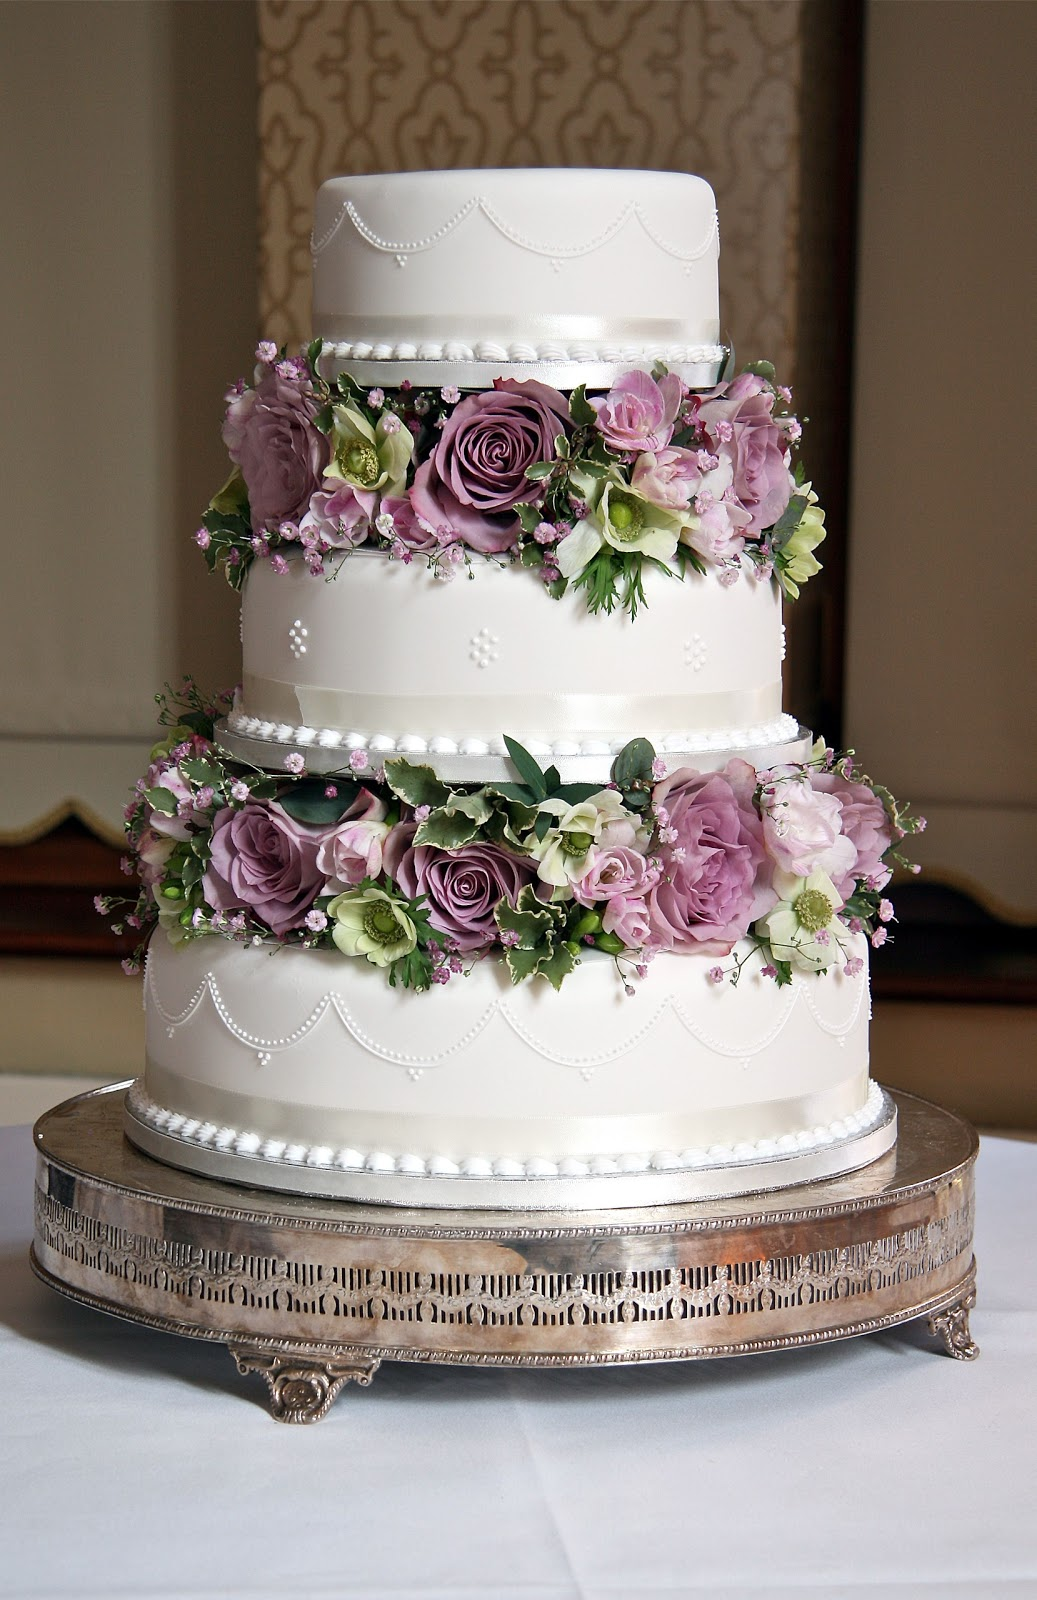 wedding cake with flowers in between the layers. I themed the flowers ...